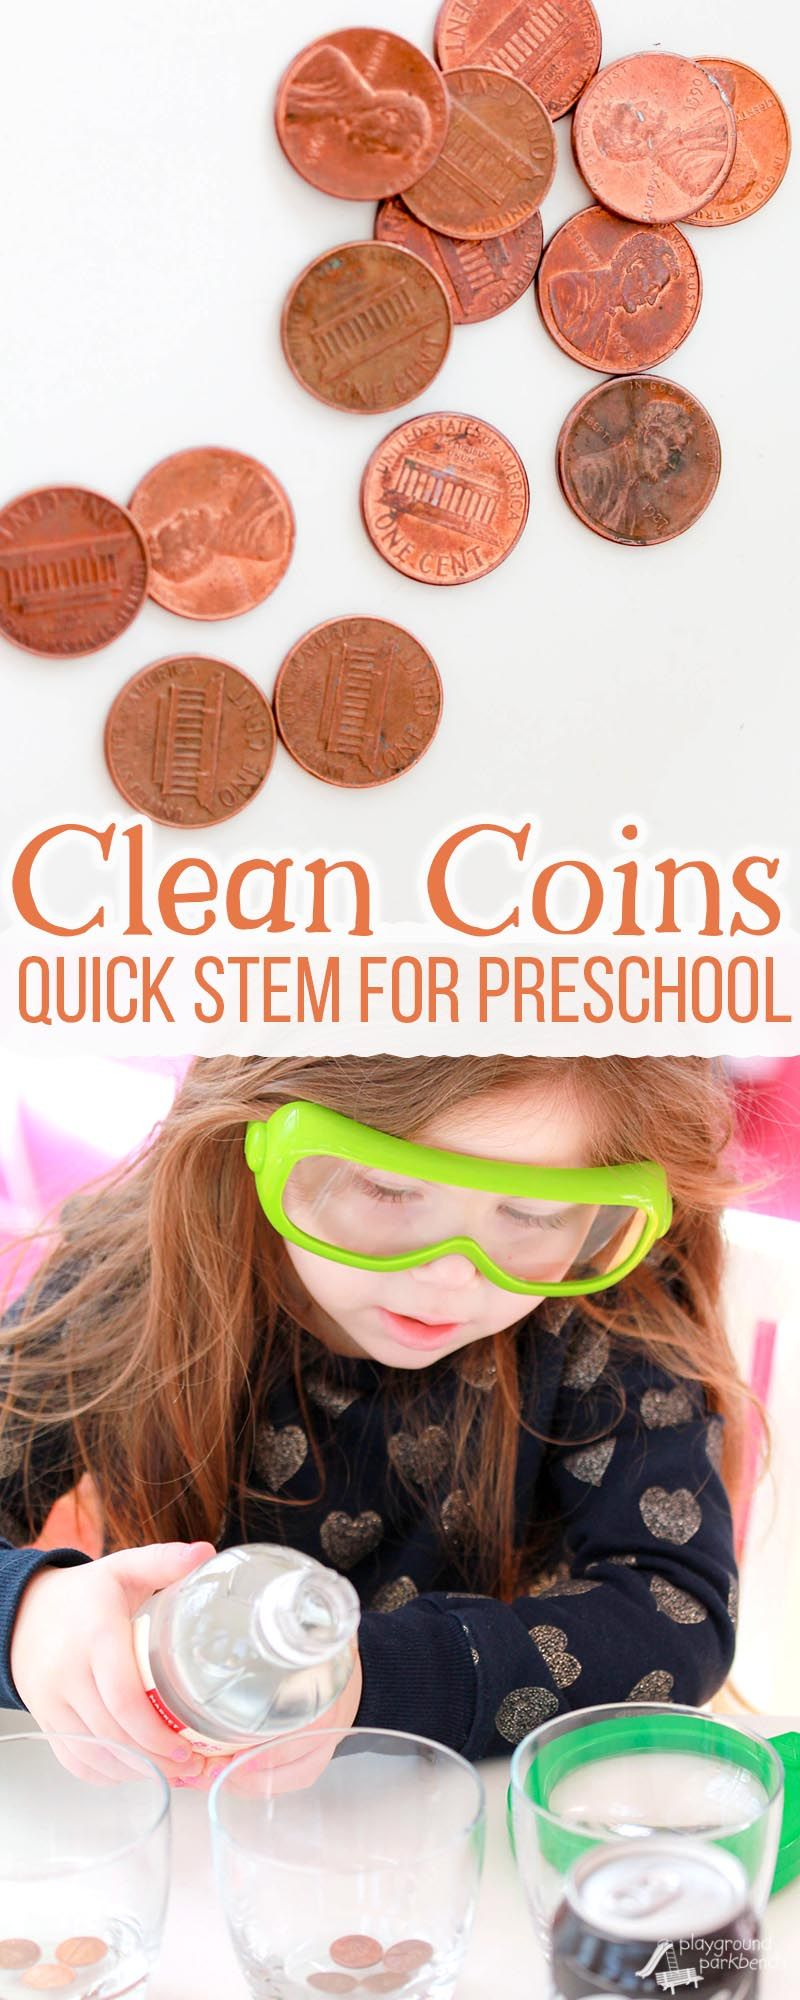 Clean Coins Quick Stem Activity Preschool